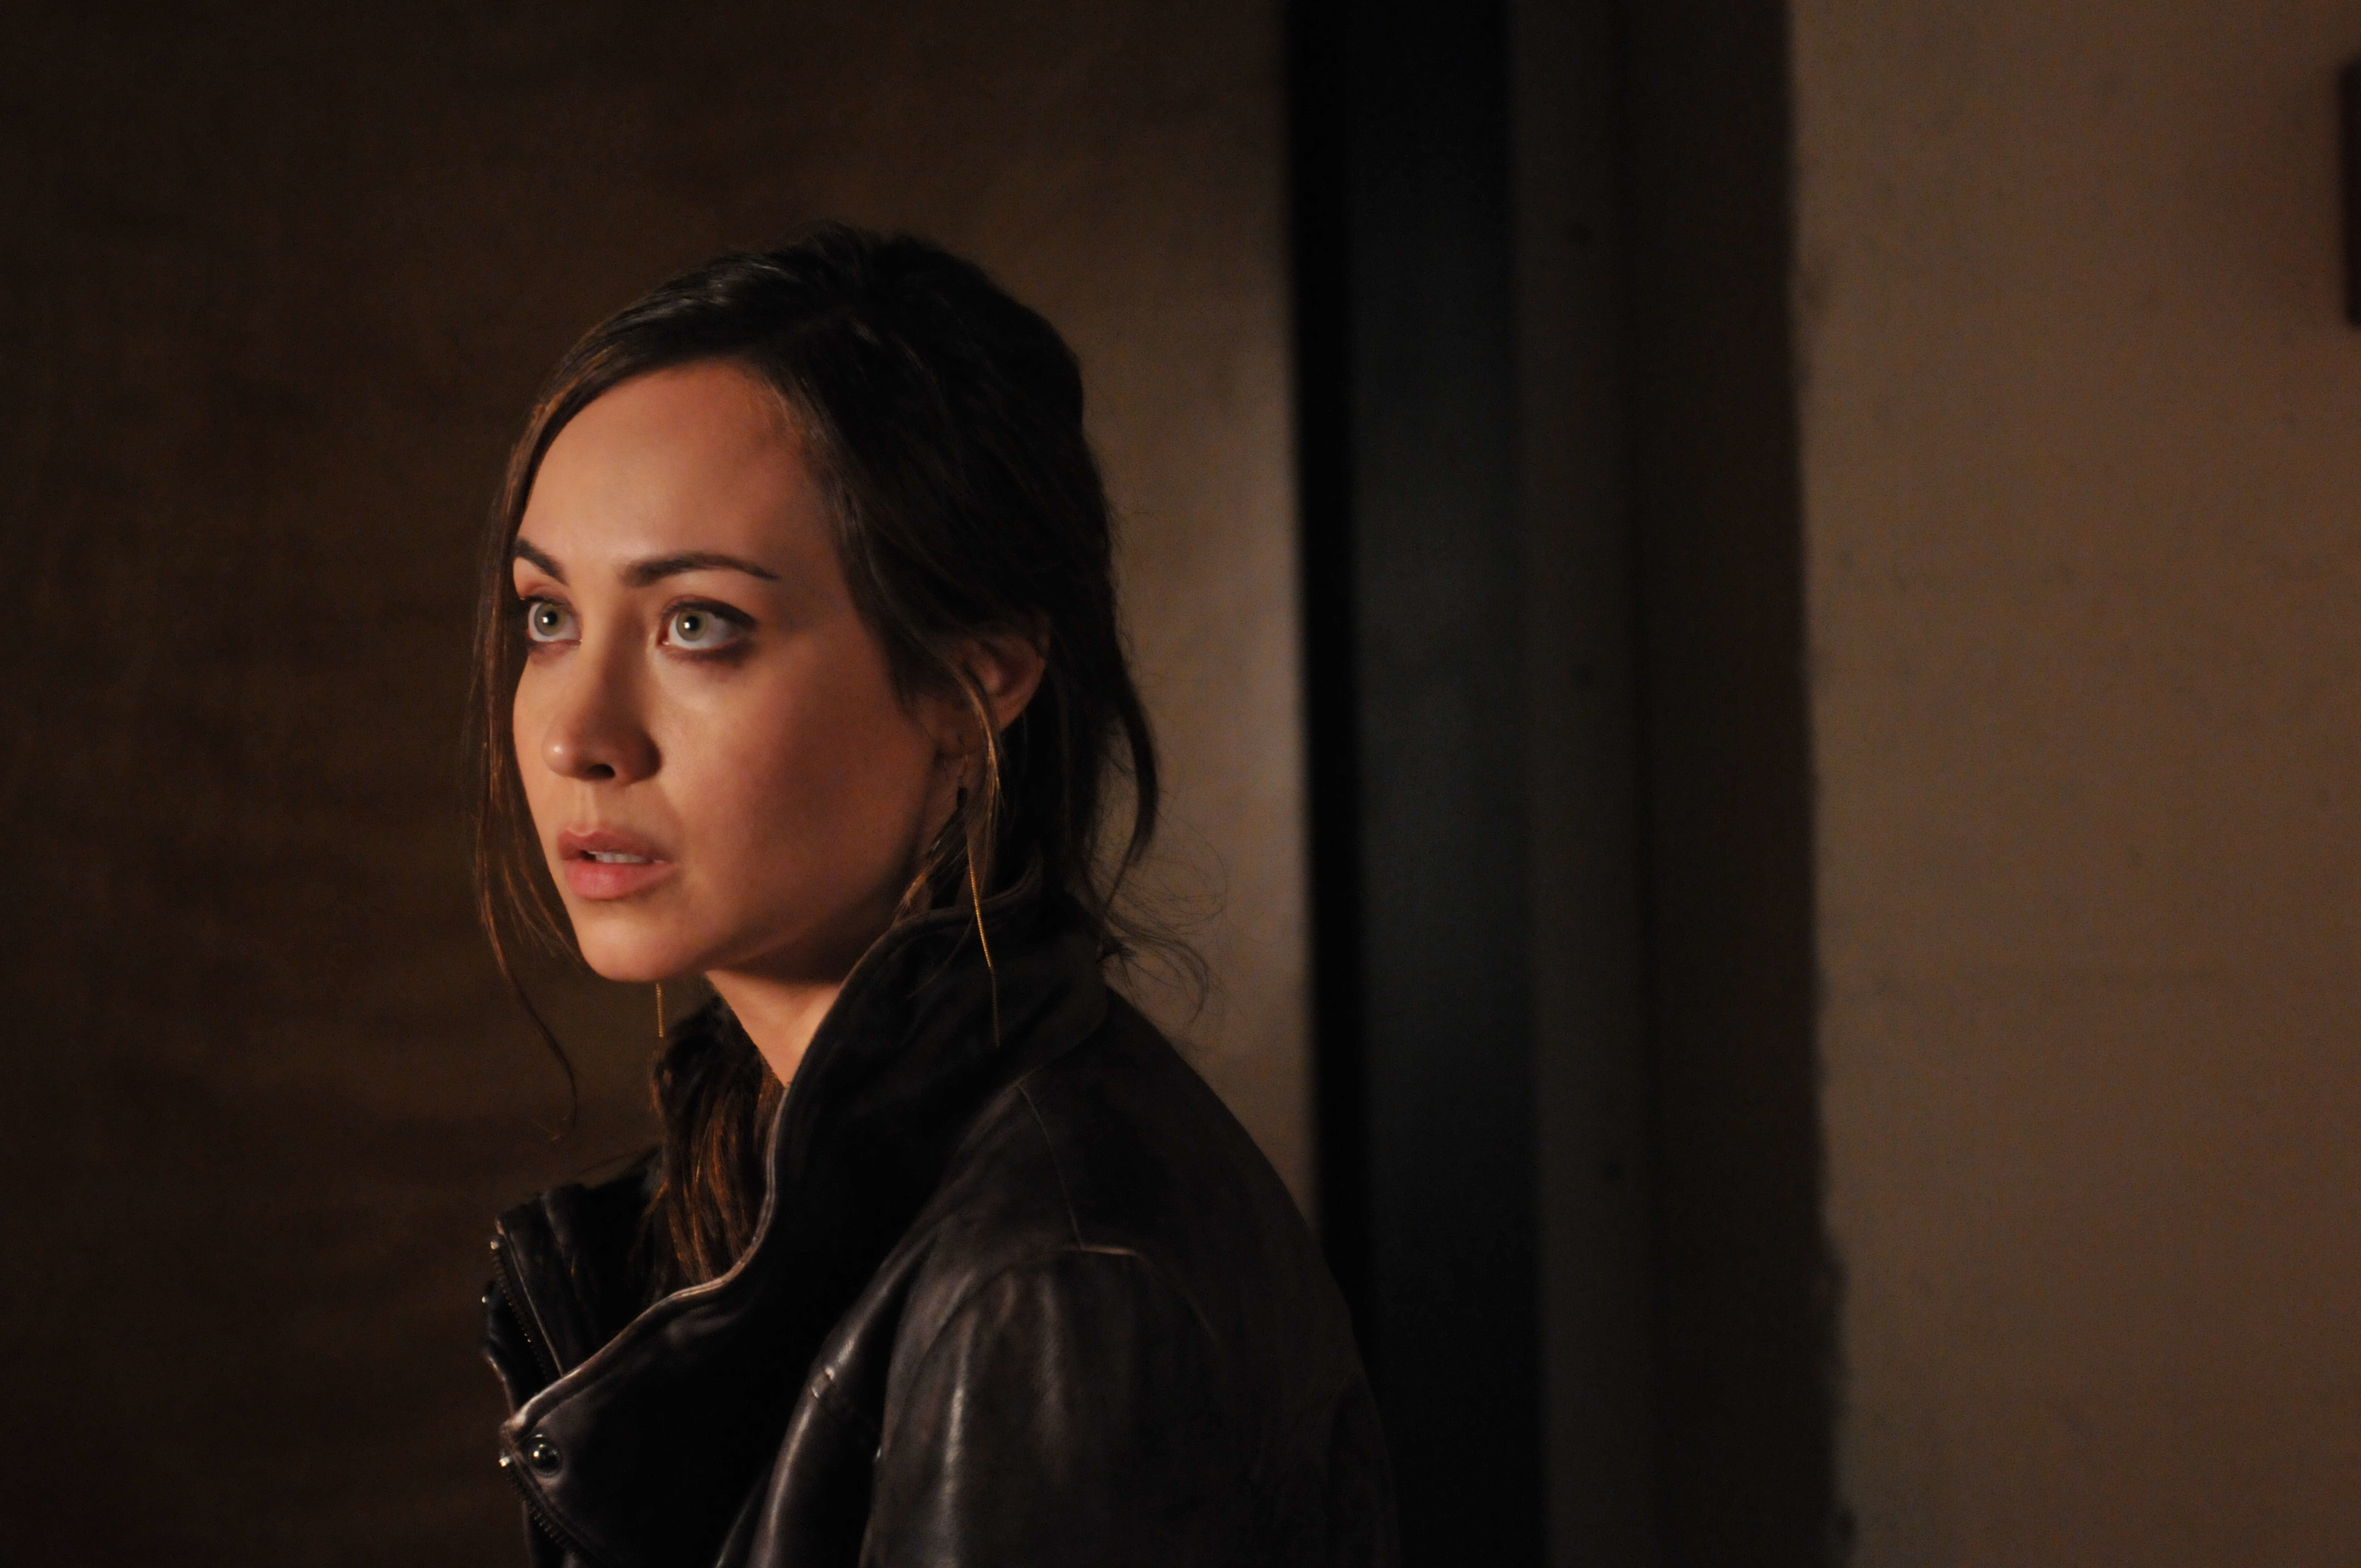 Courtney Ford in Missing William (2014)